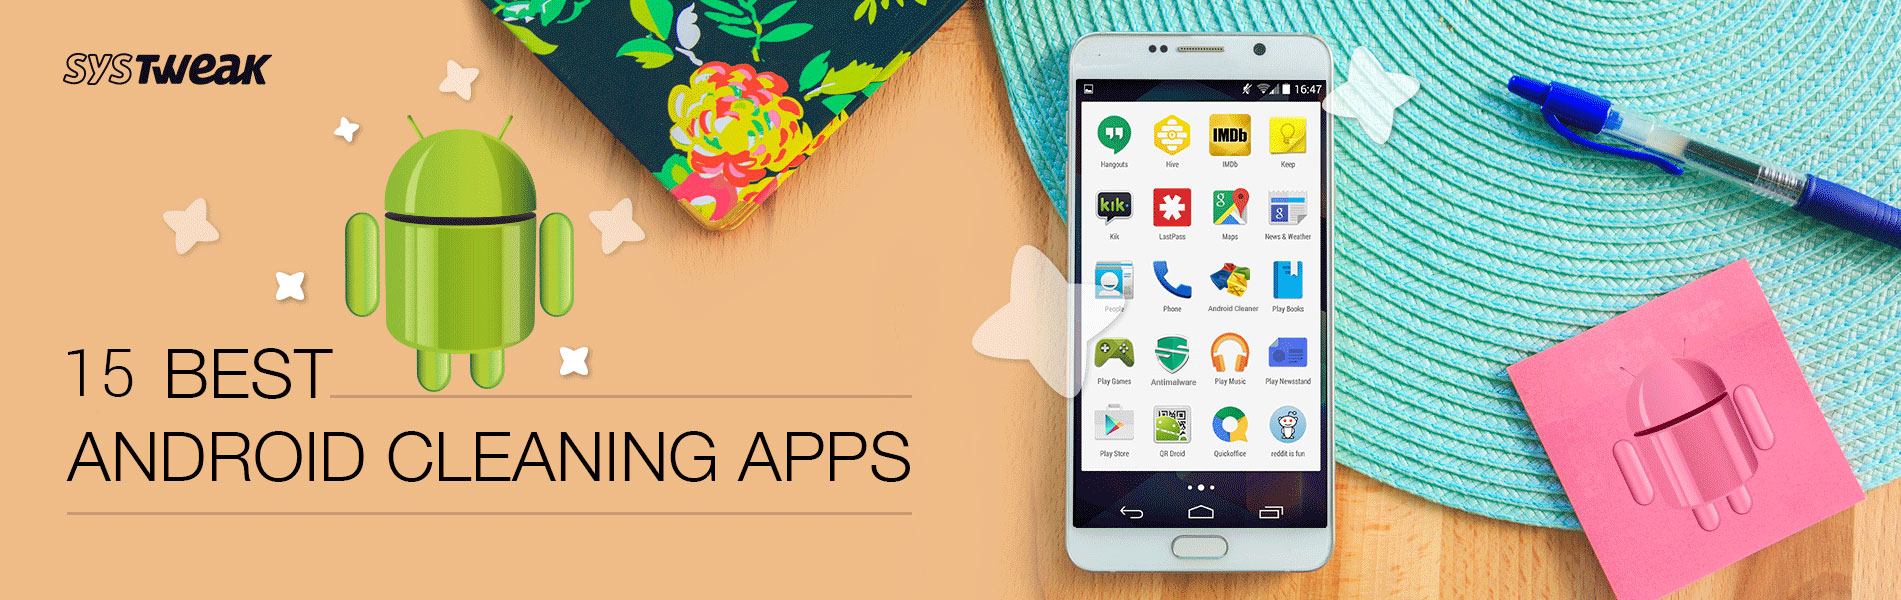 15 Best Android Cleaning Apps – Top 15 Android Cleaner 2018